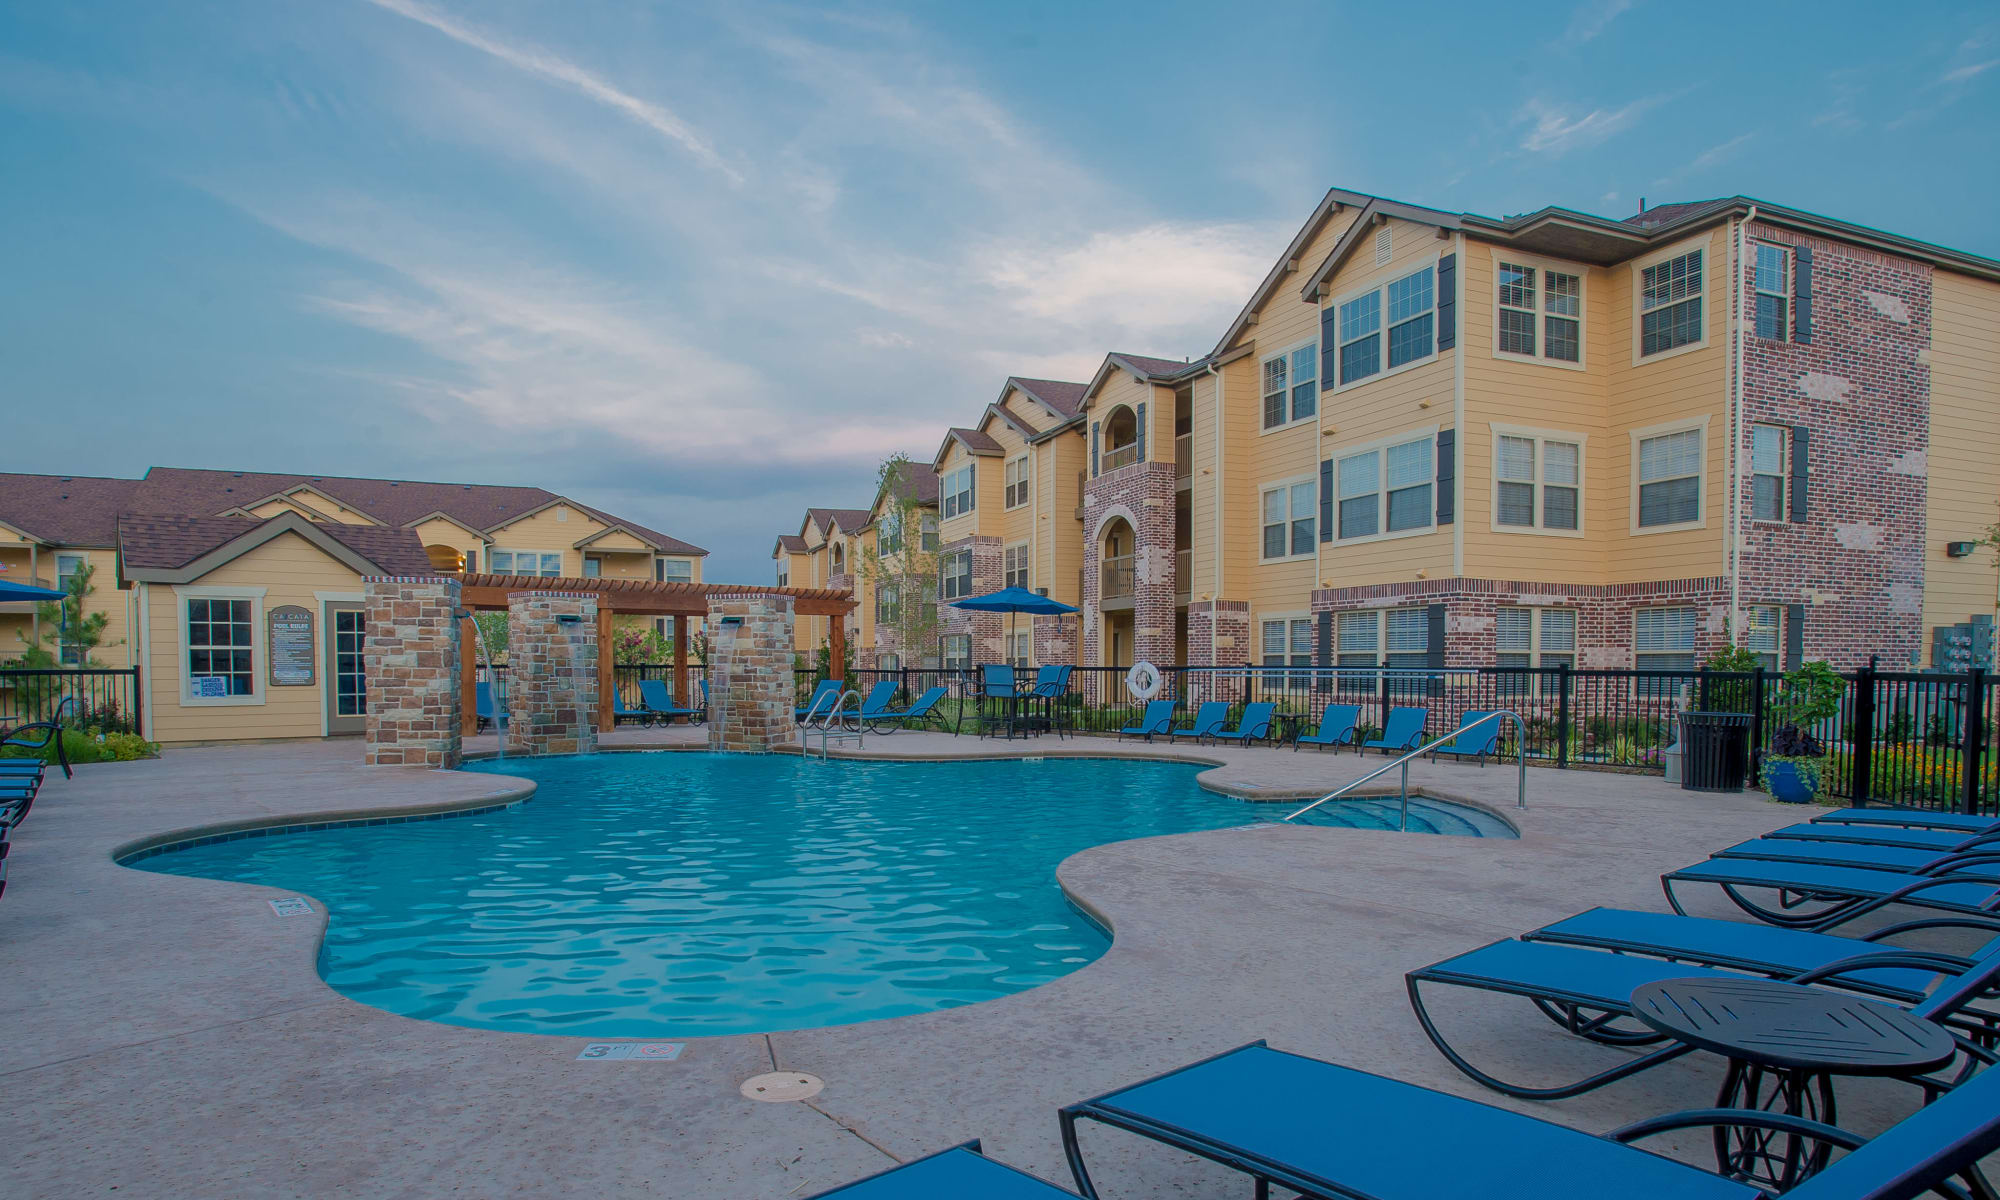 Tulsa ok apartments for rent near woodland cascata - Cheap 2 bedroom apartments in tulsa ok ...